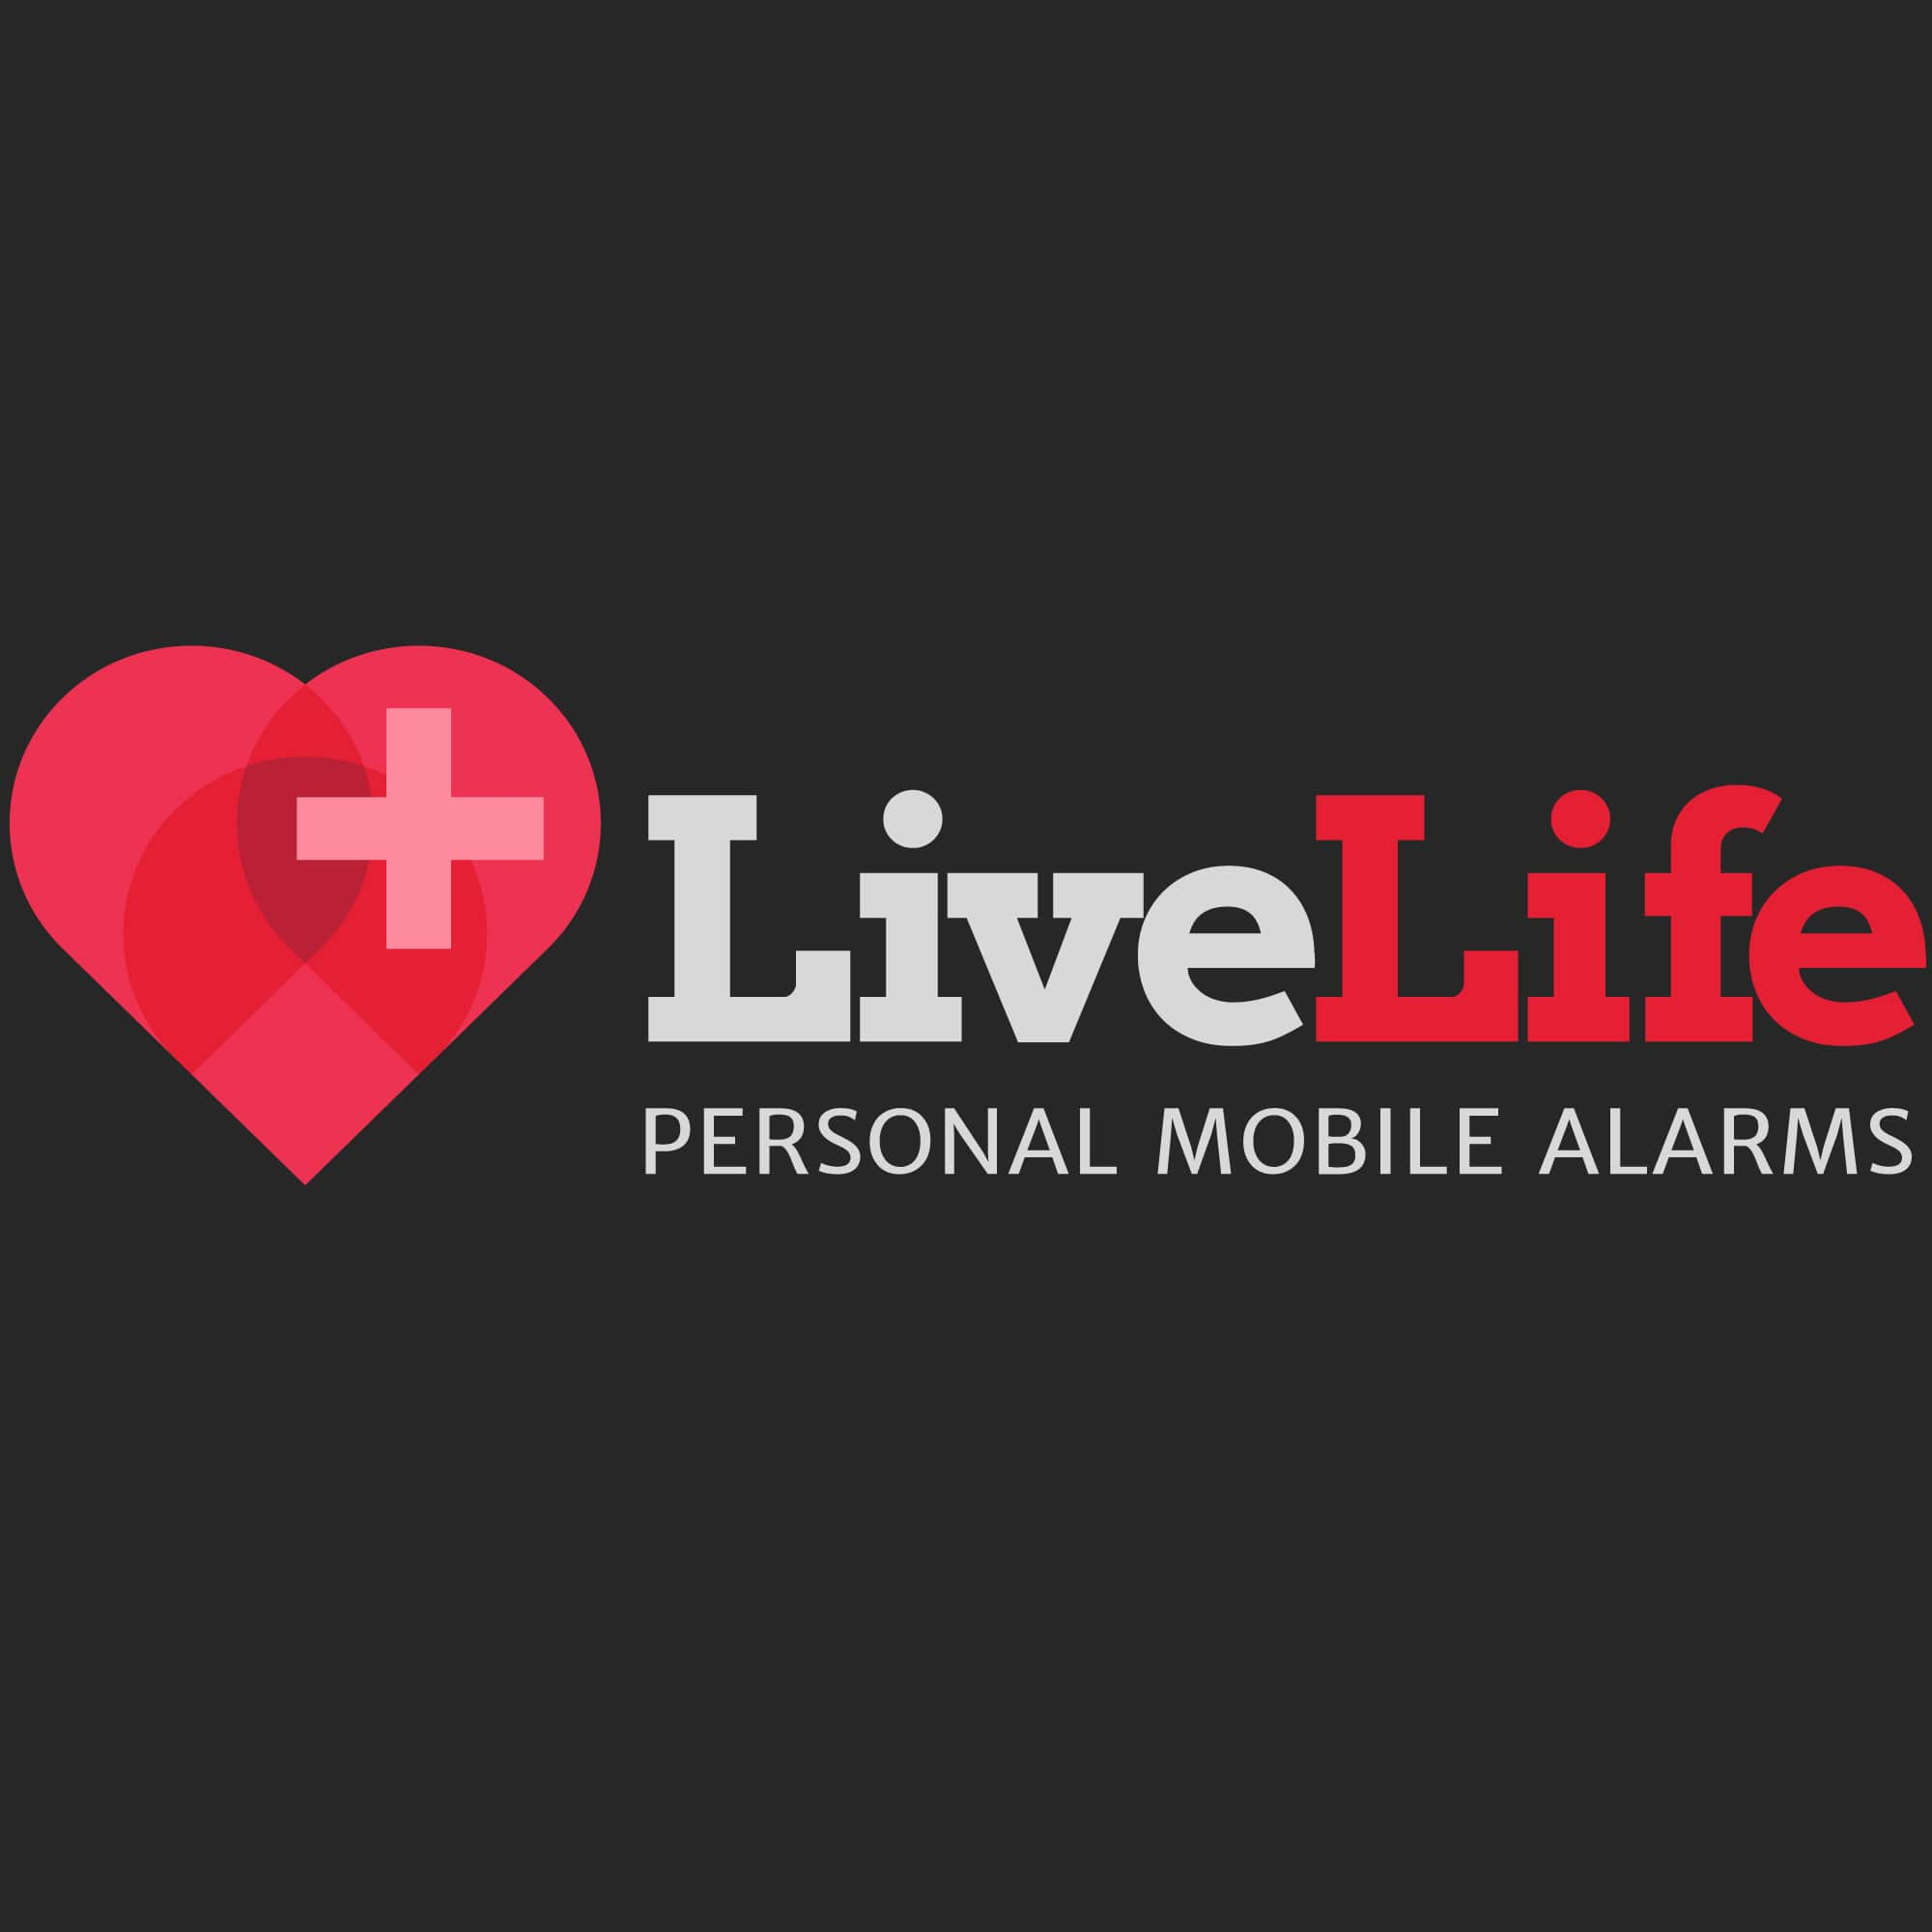 Live Life Personal Mobile Alarms | Another DR Care Solutions Strategic Partnership